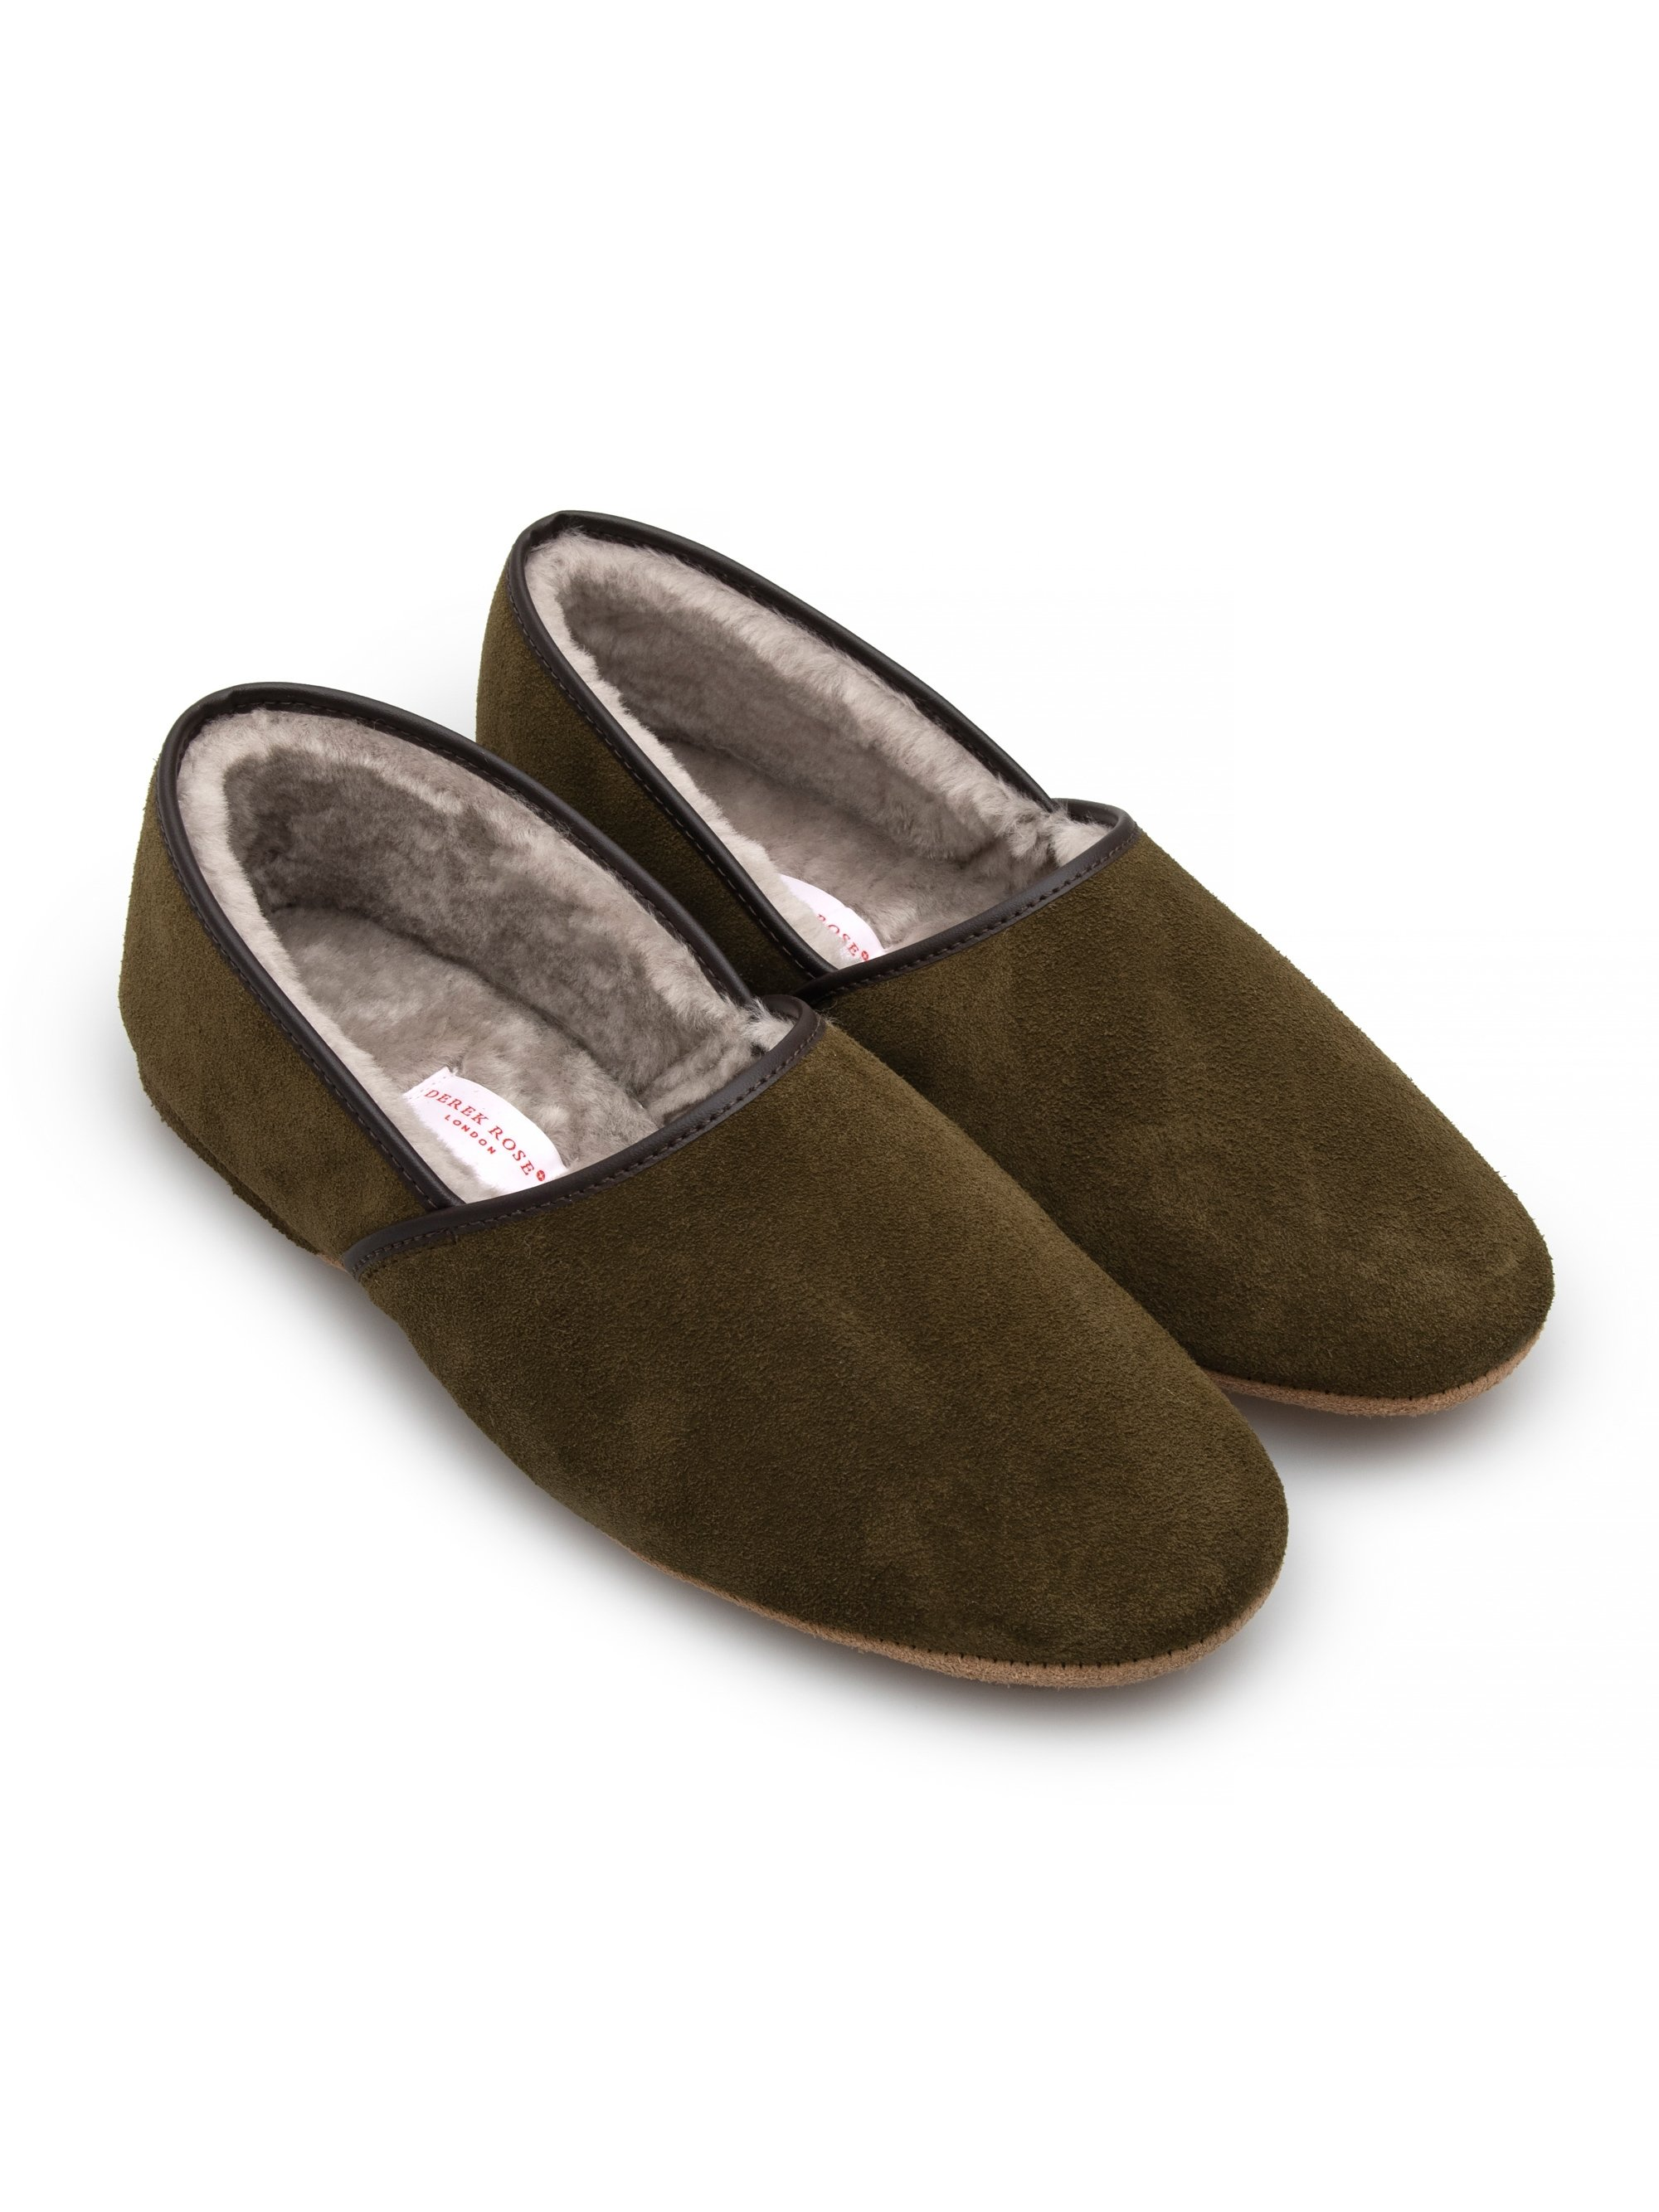 Men's Closed-Back Slipper Crawford Suede Sheepskin Khaki